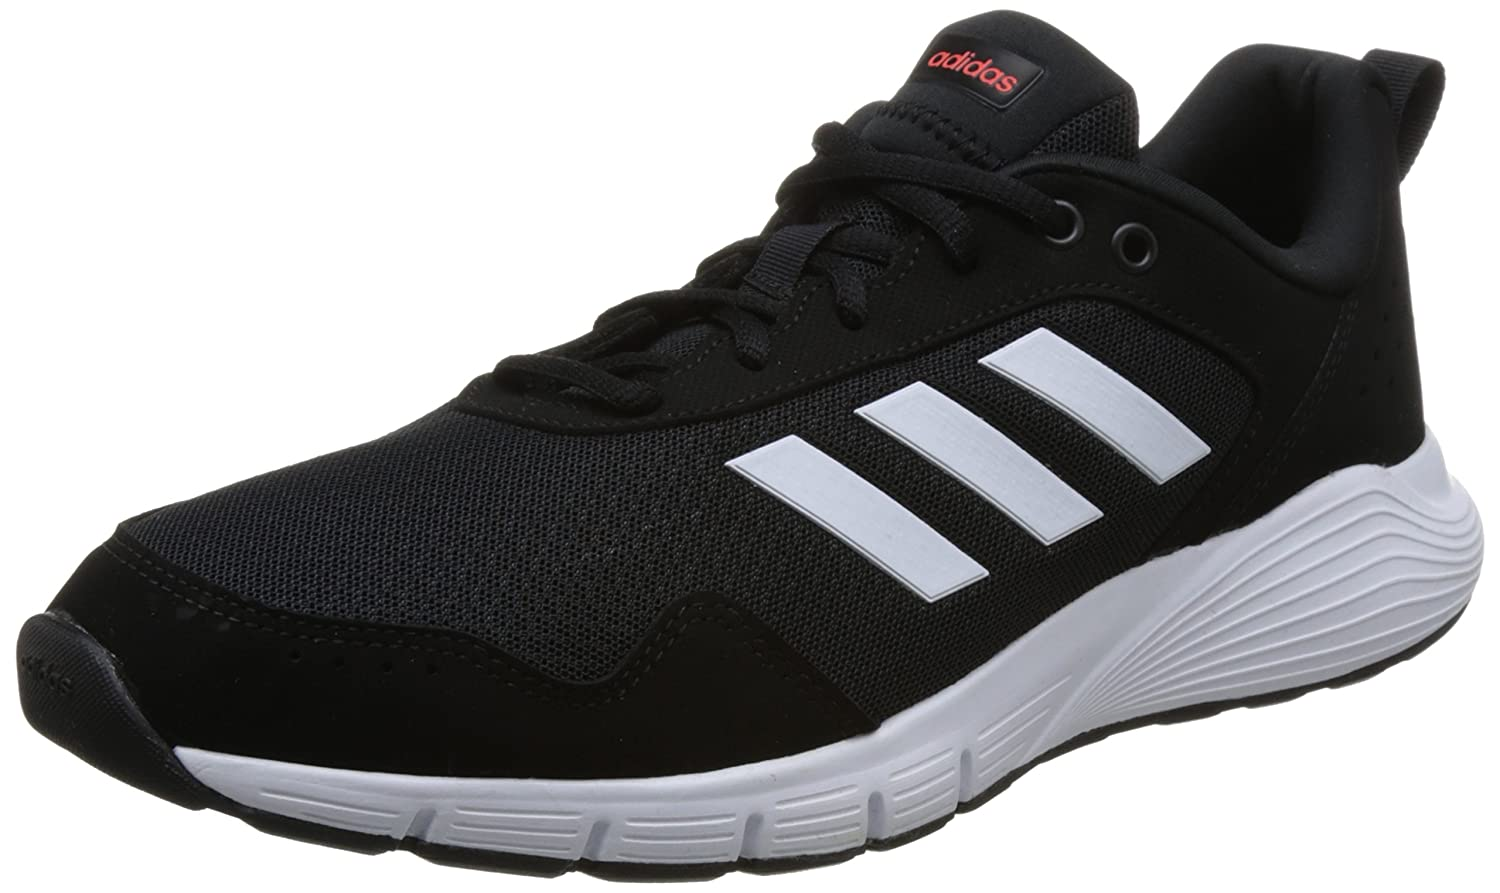 8c2f412bf Adidas Men's Fluidcloud Neutral M Running Shoes: Buy Online at Low Prices  in India - Amazon.in